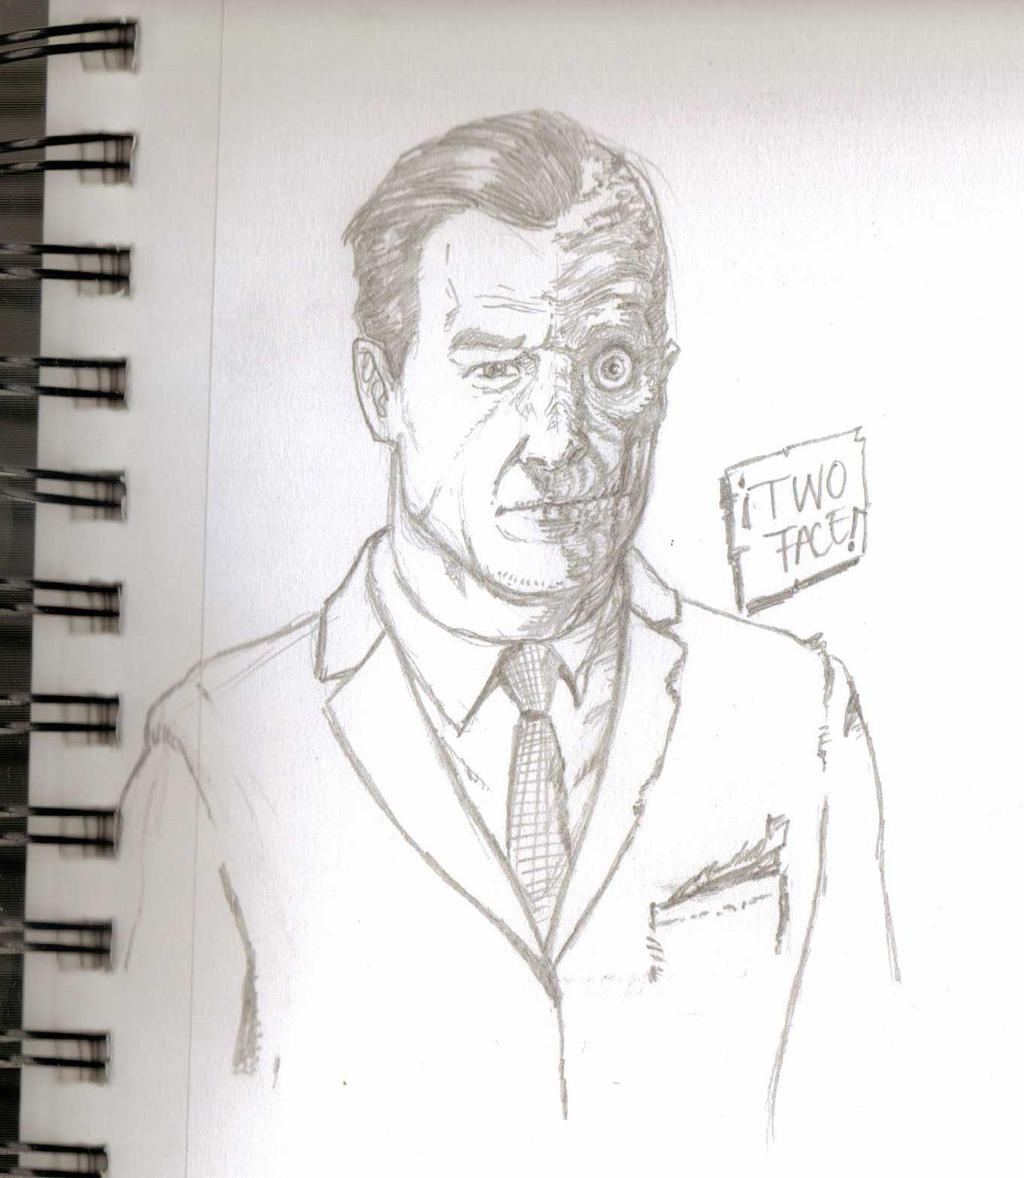 Two face sketch by EmanuelMacias